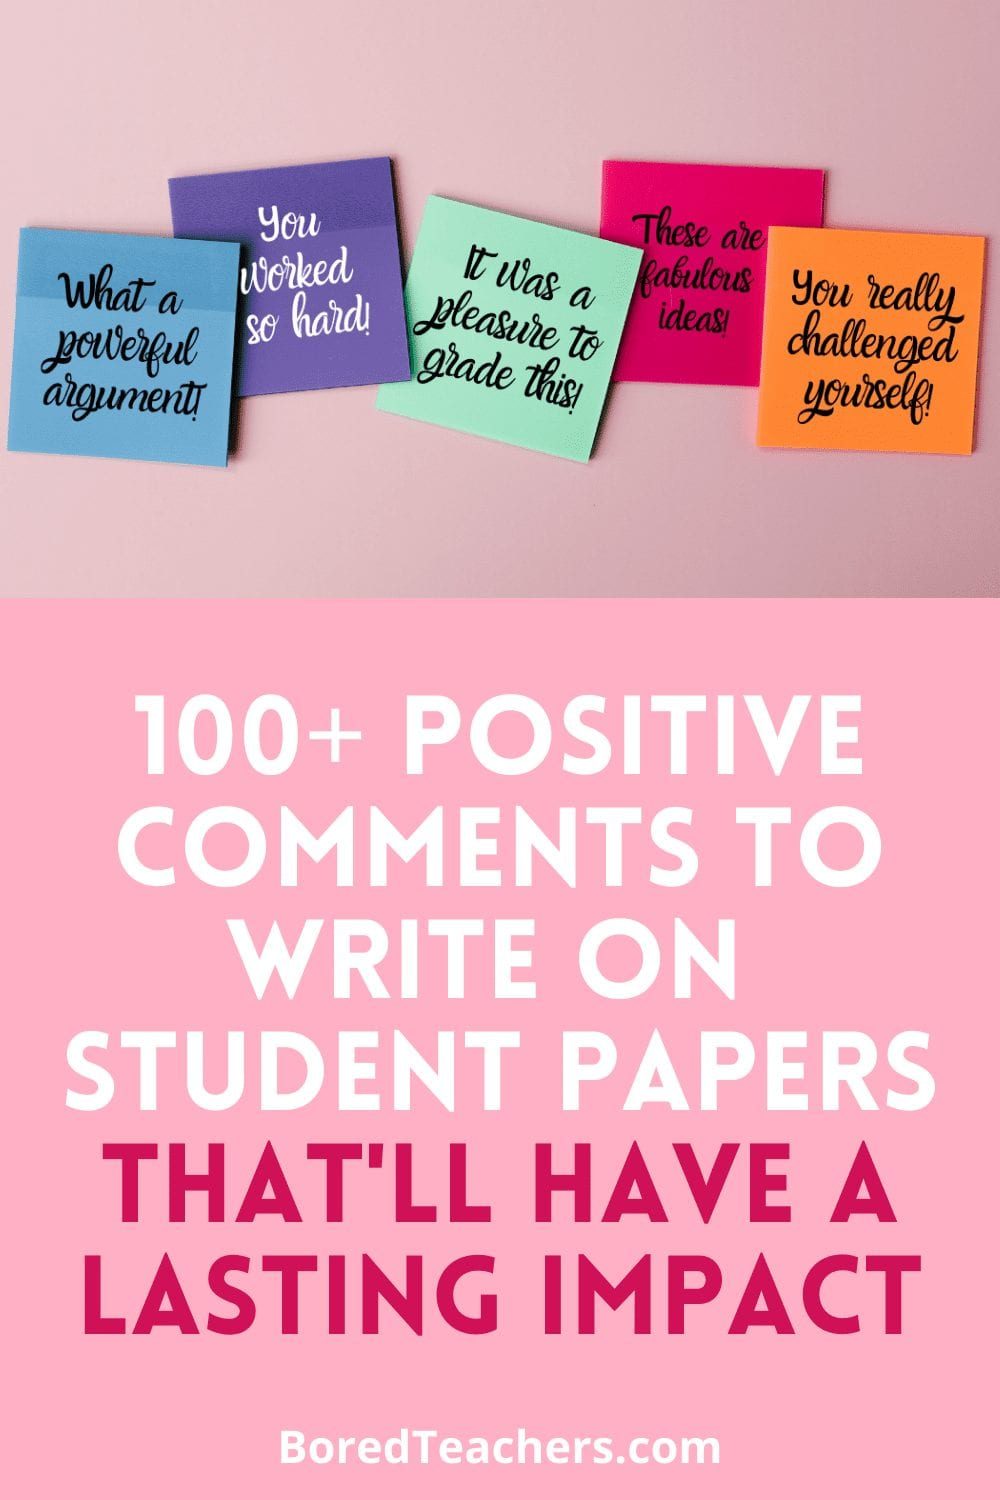 100+ Positive Comments to Write on Student Papers That'll Have a Lasting Impact